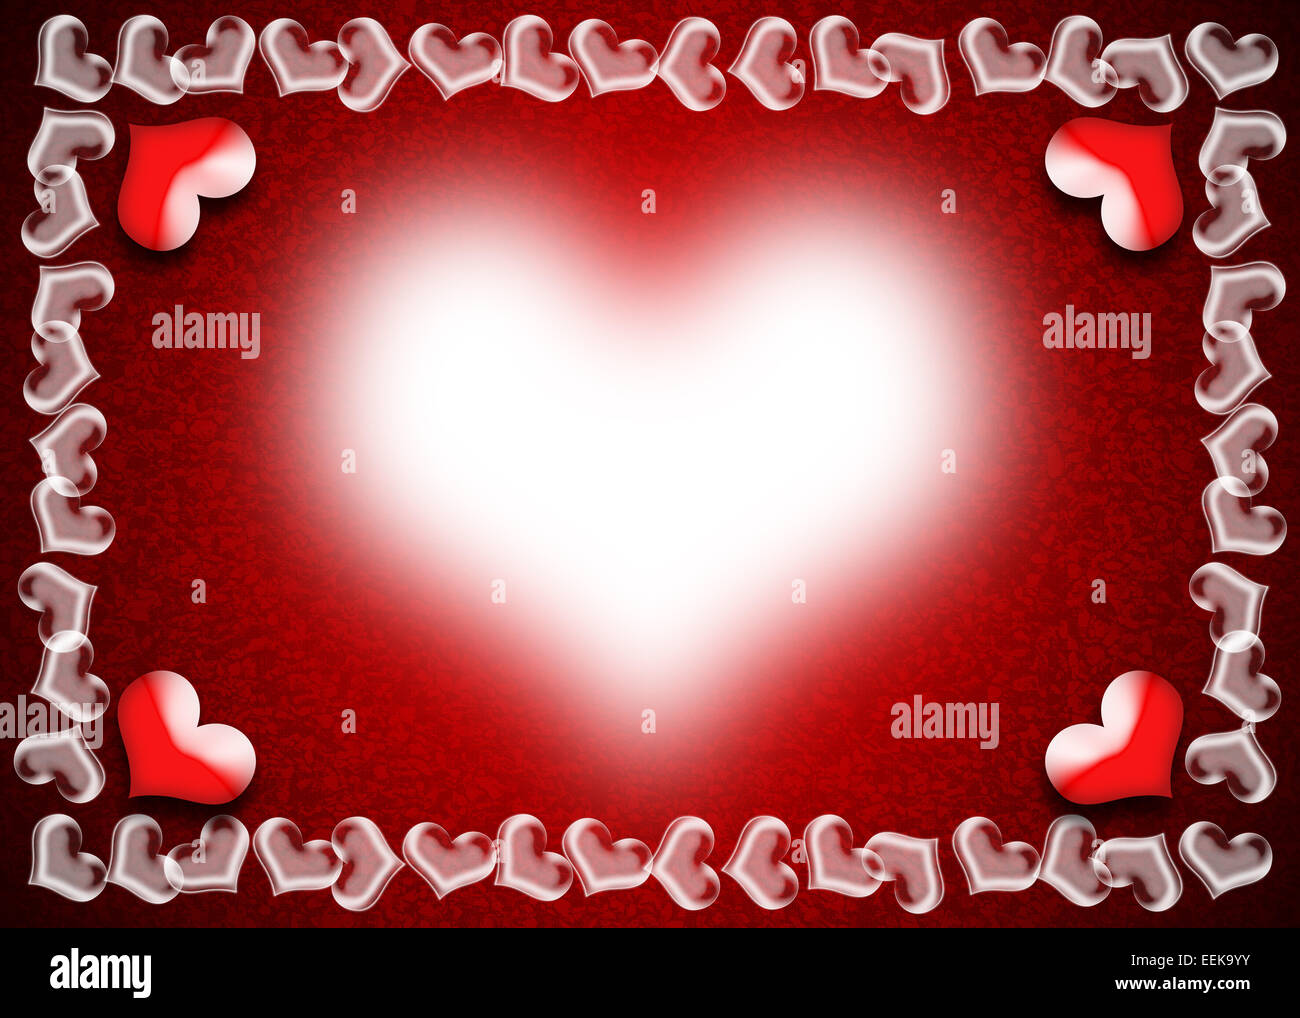 Valentine Day card Heart frame on red and black background – Valentines Card Background